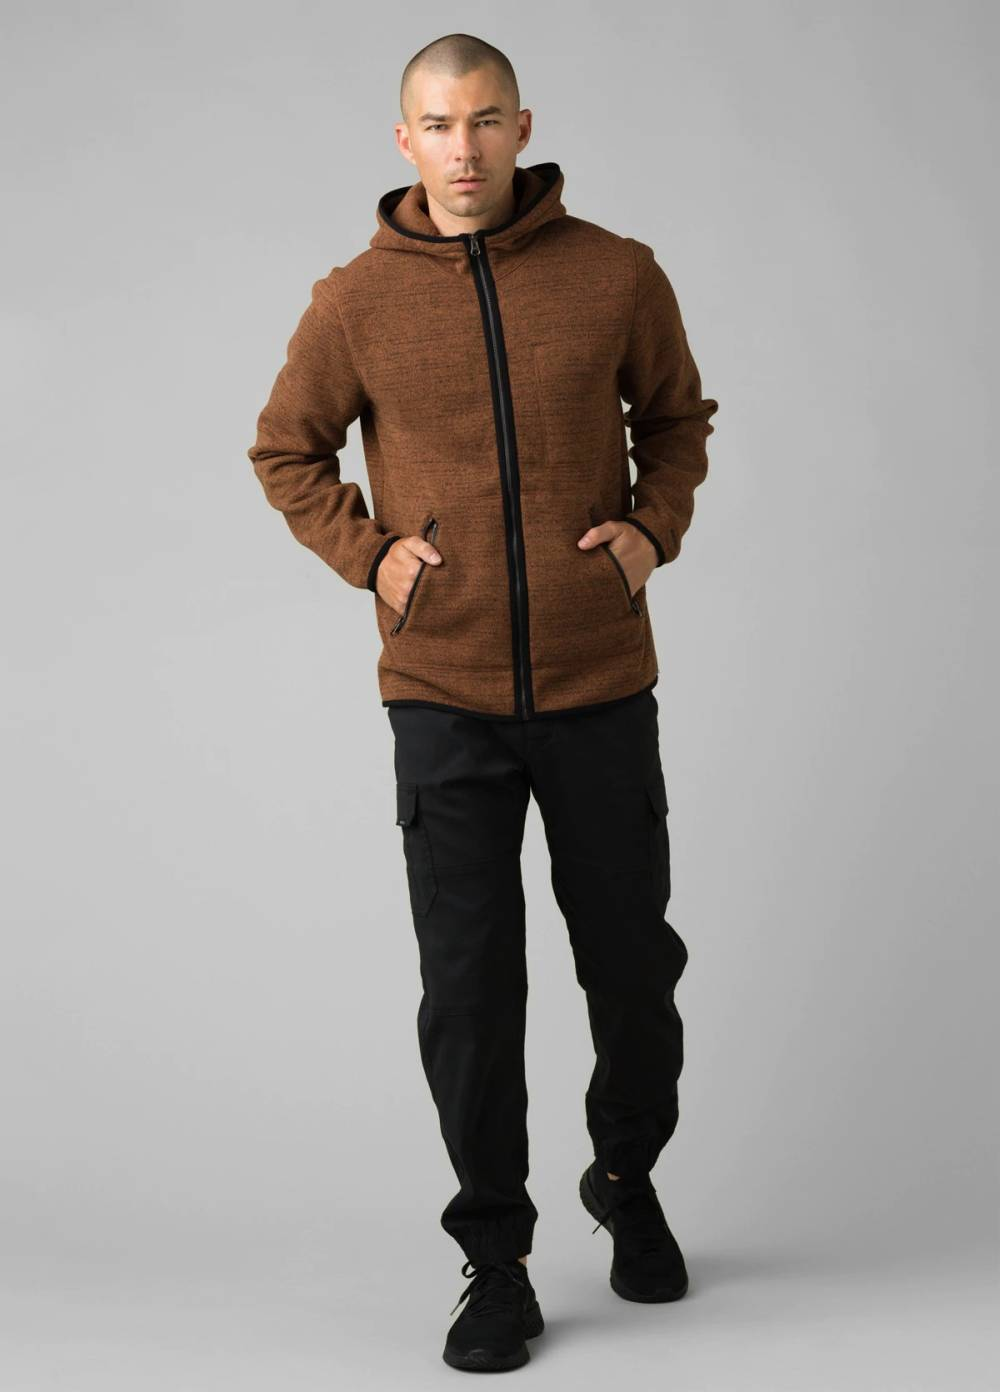 prana ethical mens clothing brand